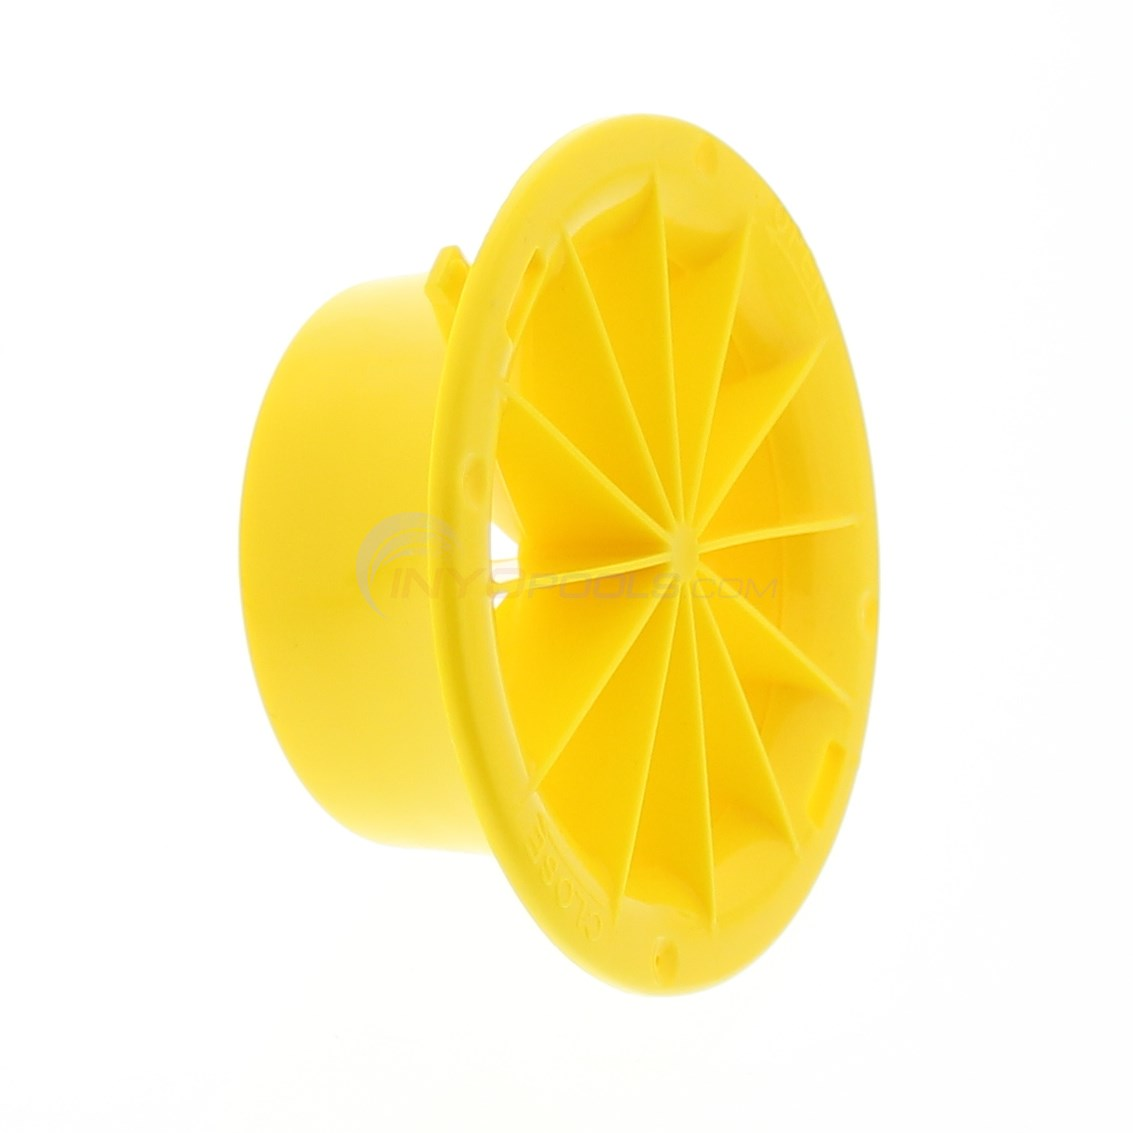 IMPELLER TUBE - YELLOW   DOLPHIN (DL-9995070)